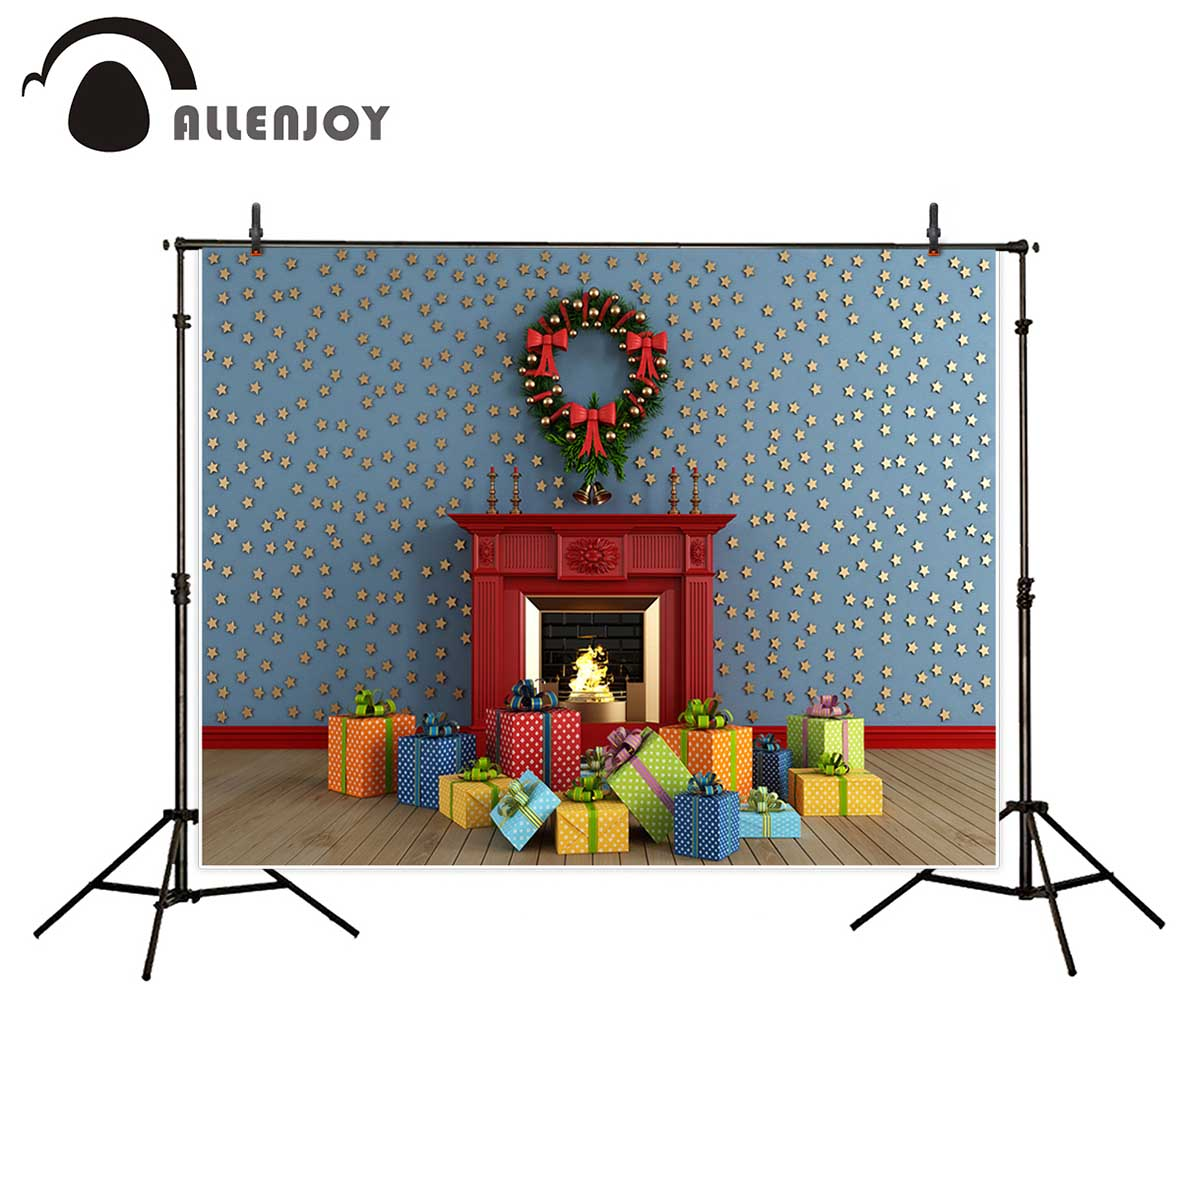 Allenjoy photography background Blue wall stars Christmas gifts fire stove backdrop Photo background studio camera fotografica allenjoy photography background blue red abstract christmas background golden stars glitter bokeh lights backdrop photo studio